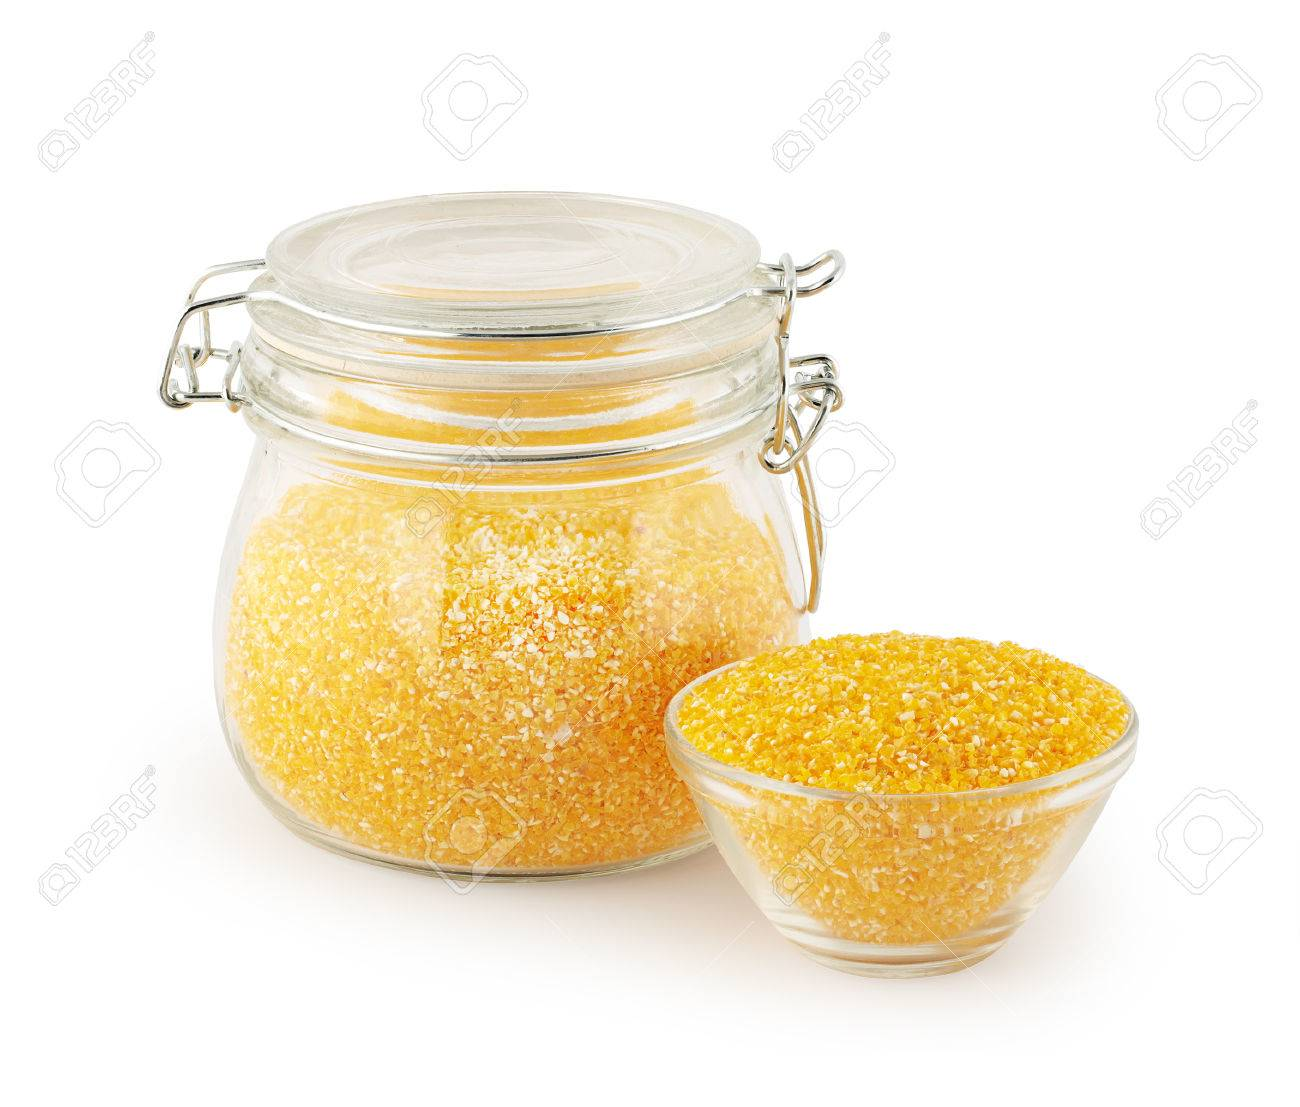 Glass kitchen utensils - Stock Photo Maize Grits In Glass Kitchen Utensils On White Background